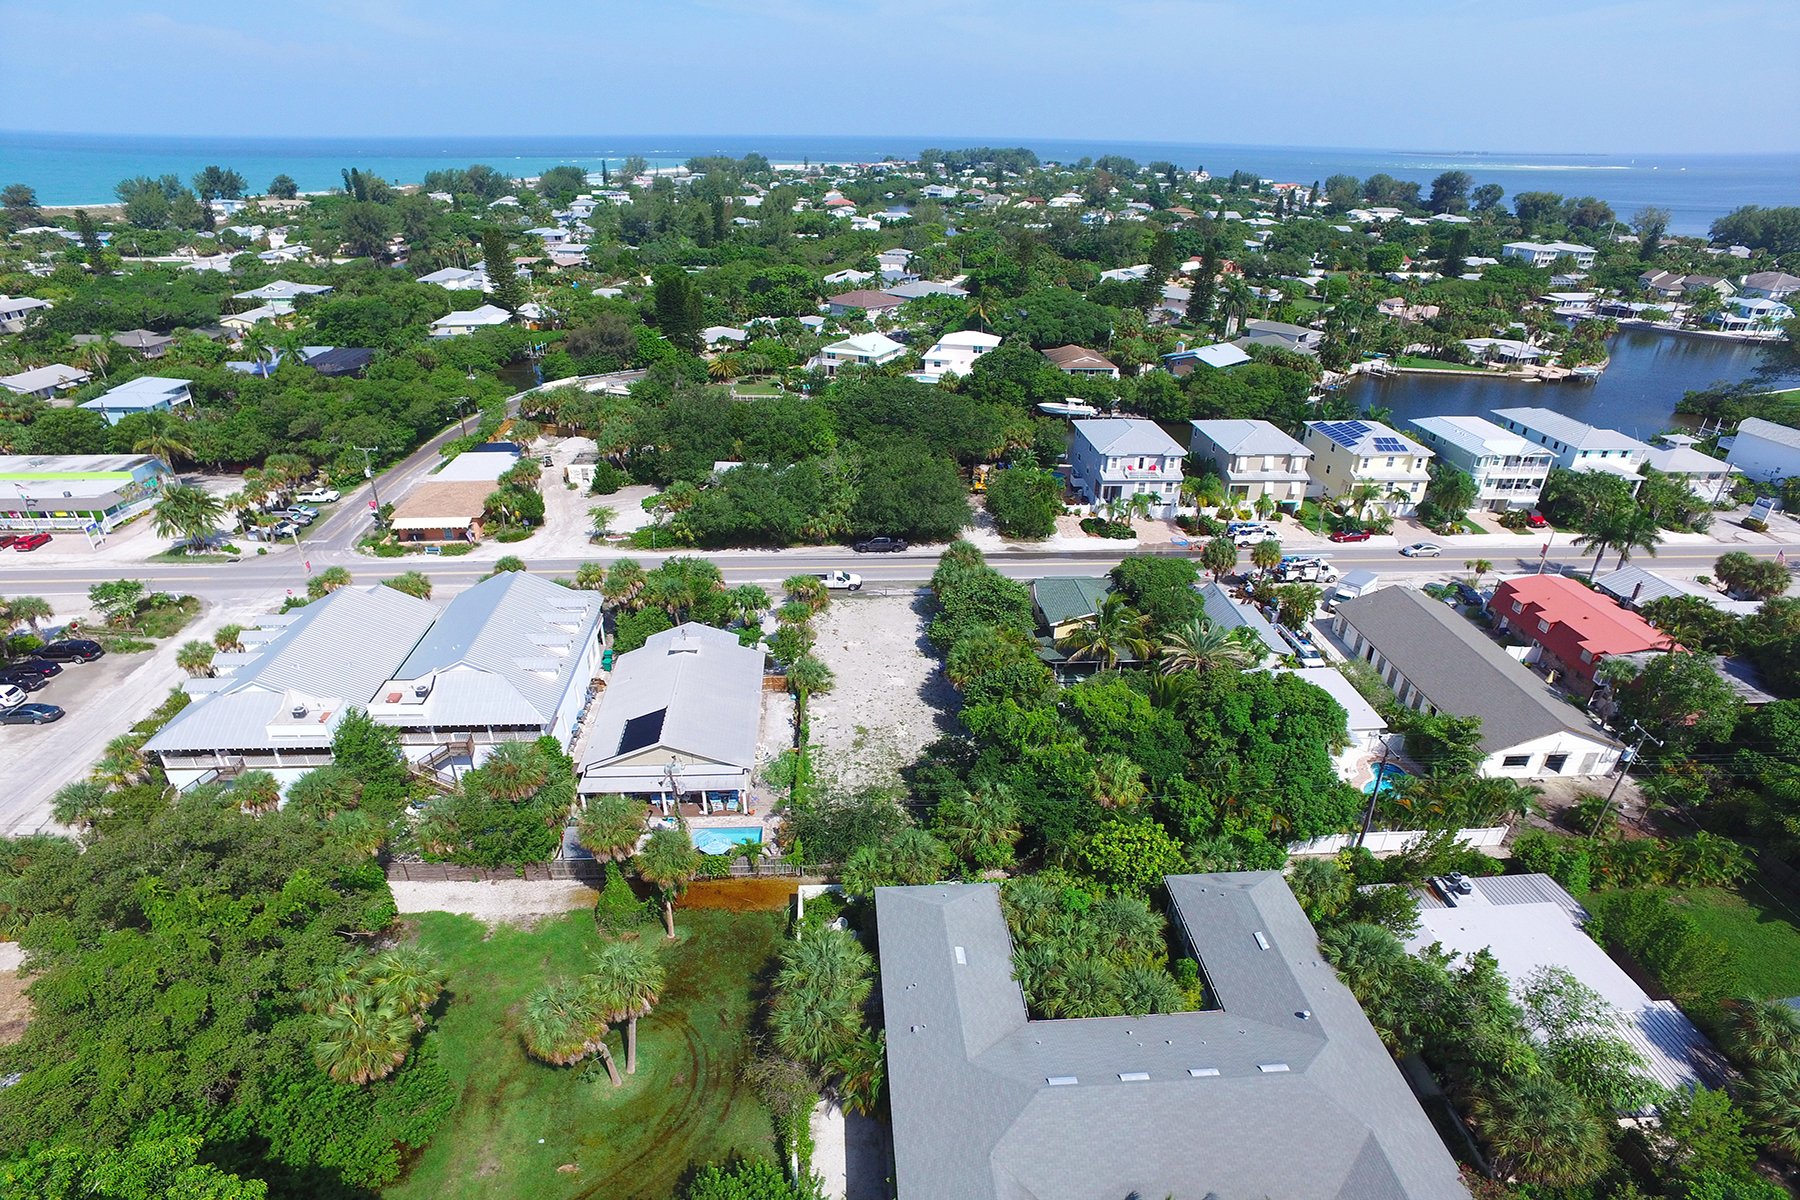 Land for Sale at ANNA MARIA 407 Pine Ave 18 Anna Maria, Florida, 34216 United States